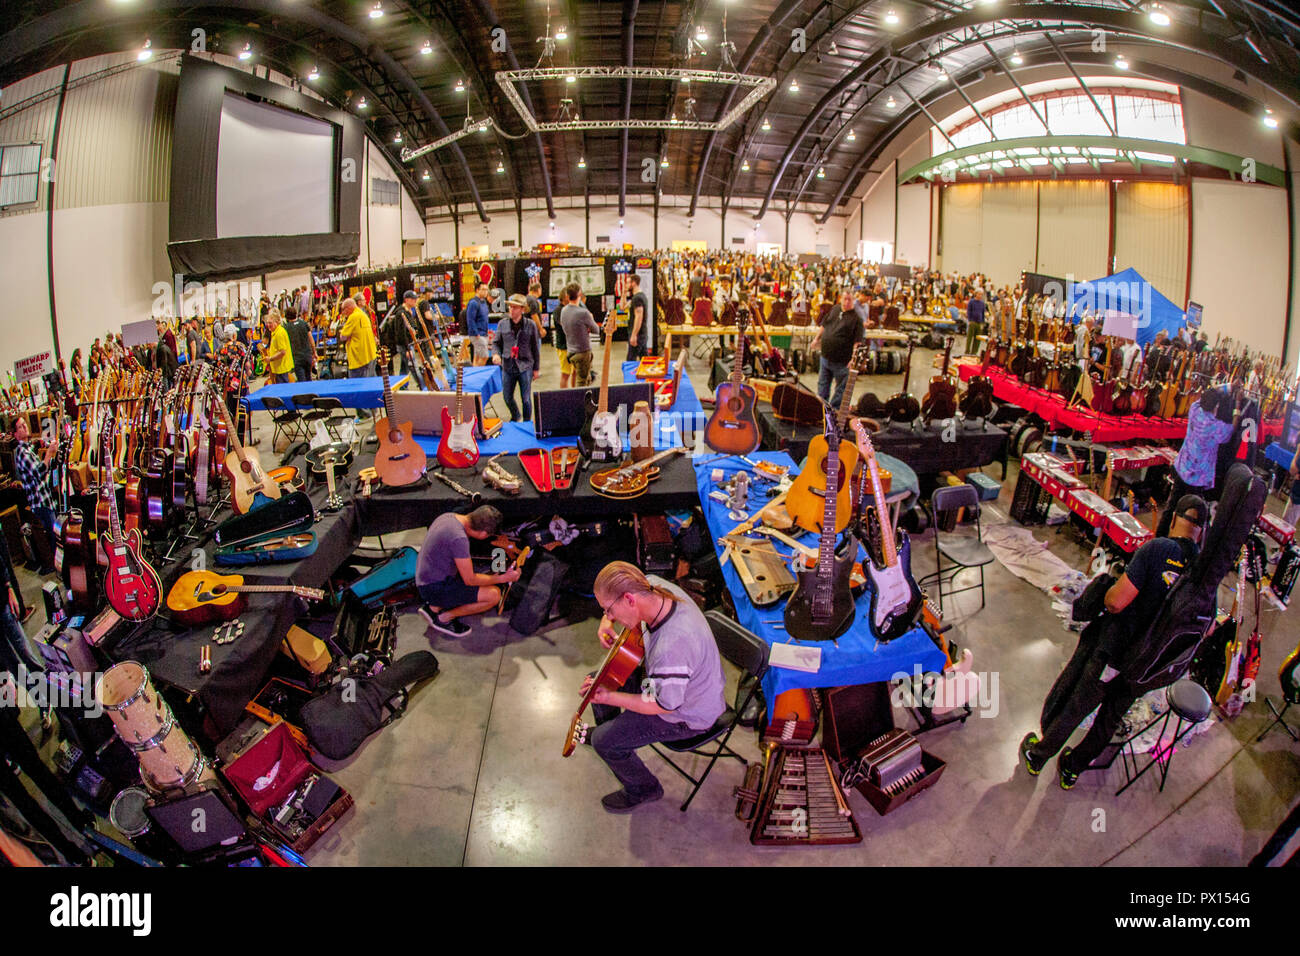 Hundreds of musicians gather at a guitar convention at a converted hanger in Costa Mesa, CA, to play their music and buy and sell instruments. - Stock Image